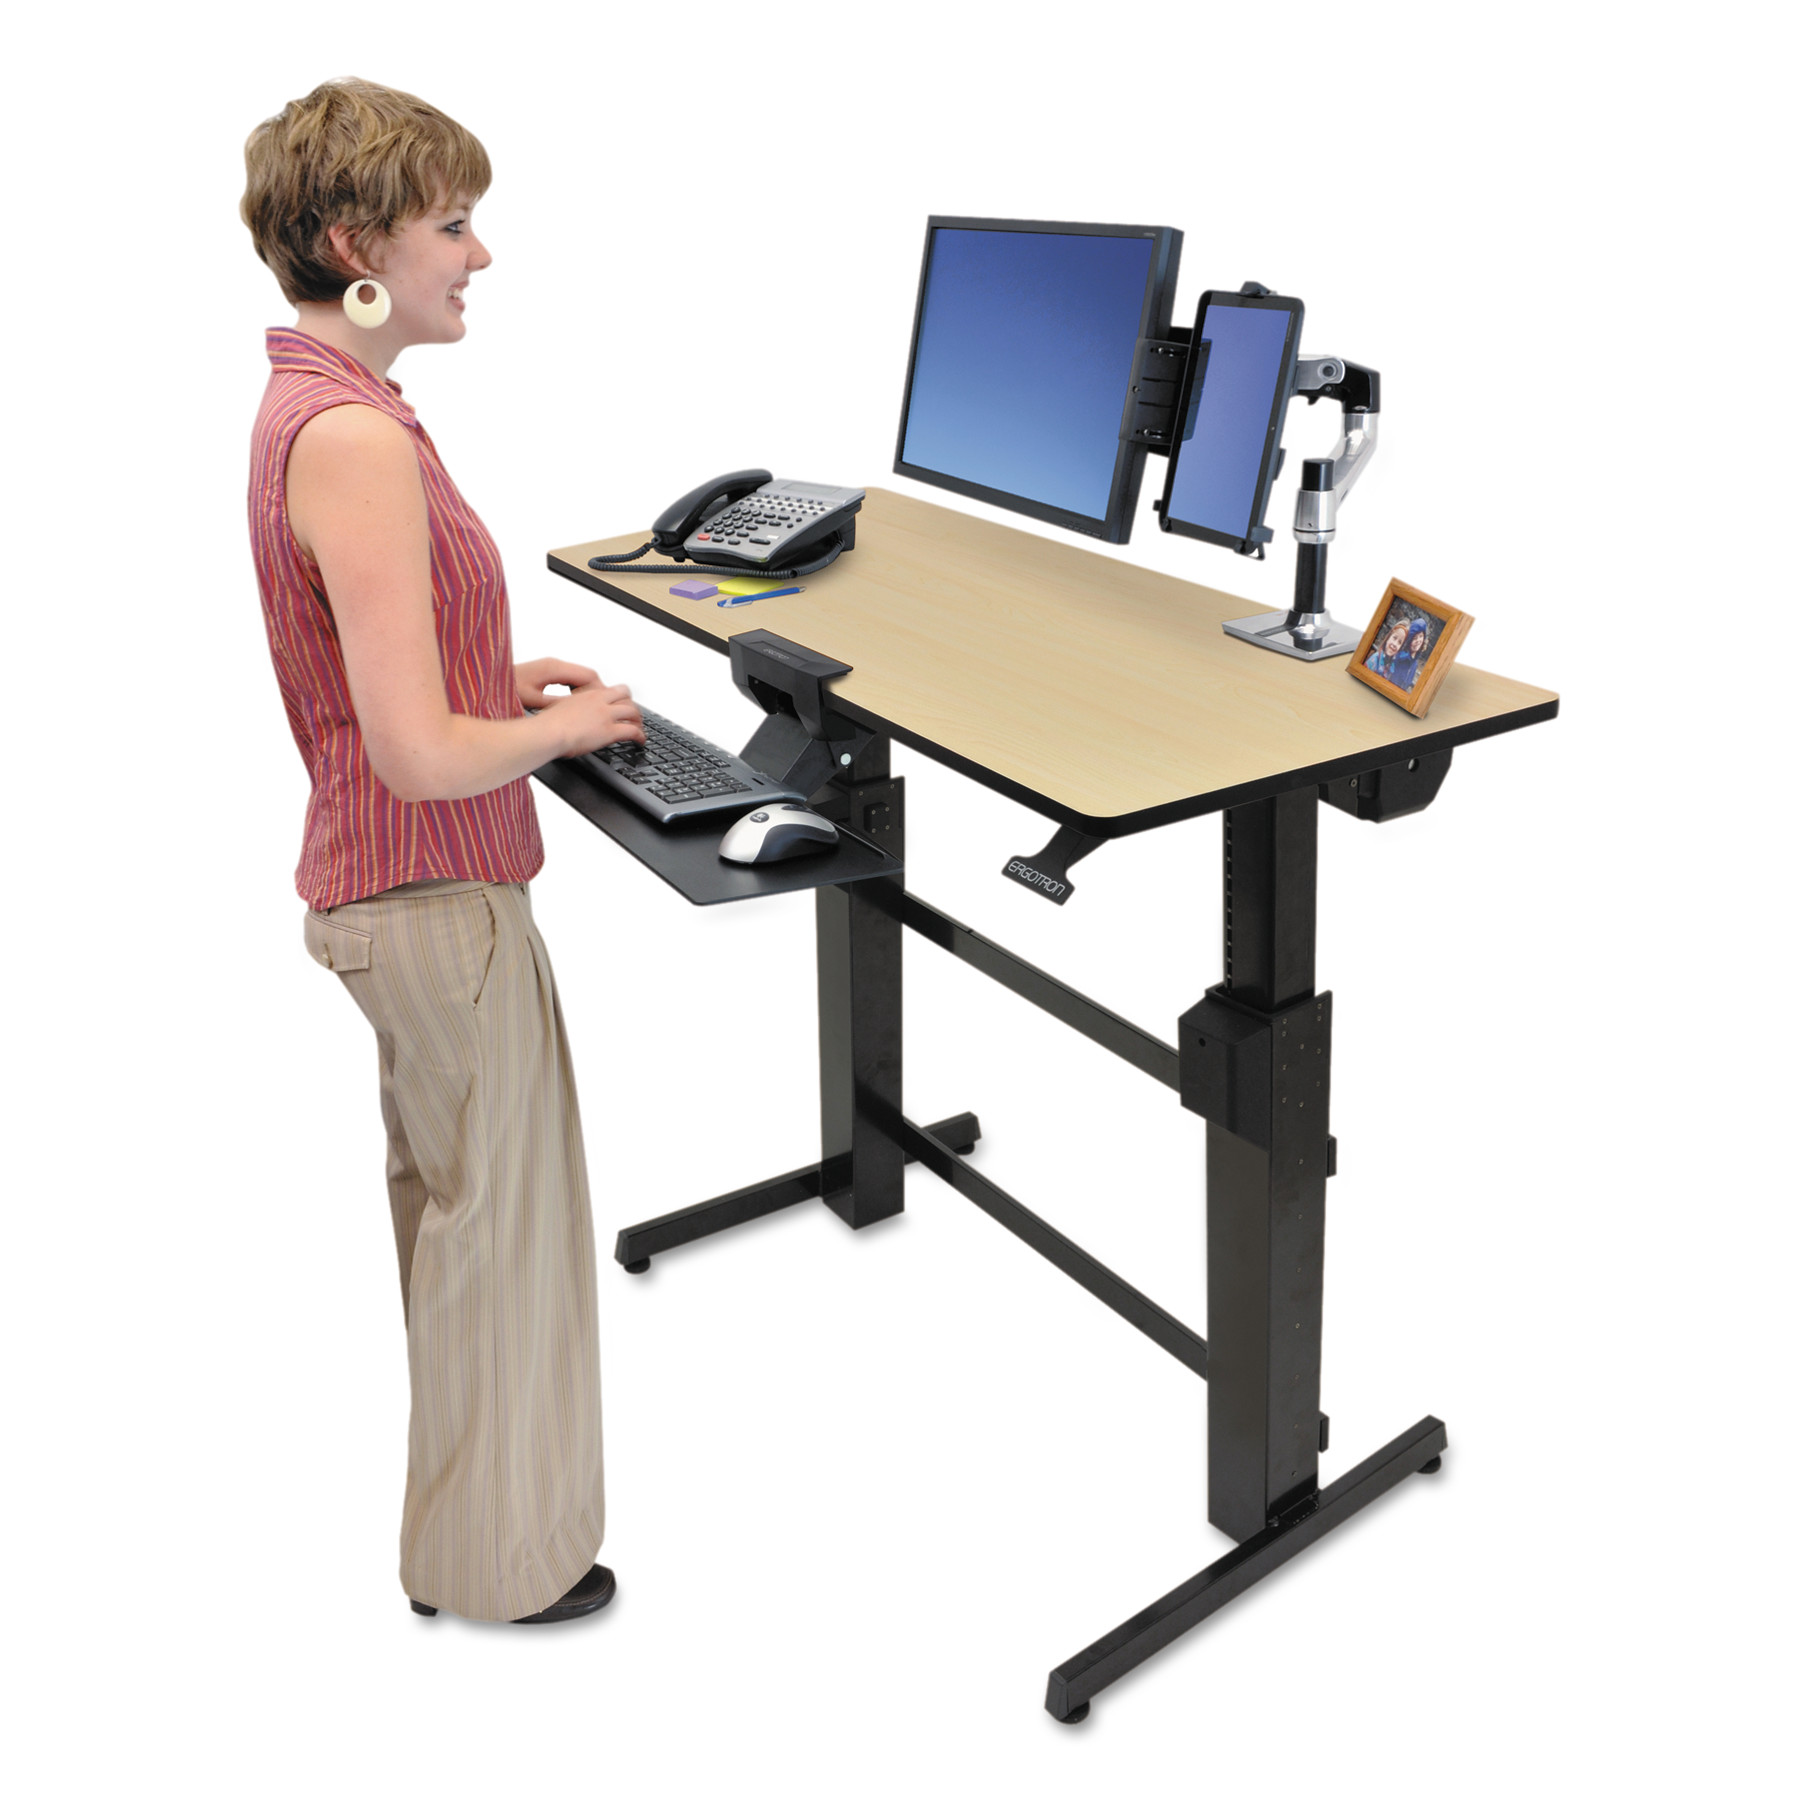 Etonnant Ergotron WorkFit D Sit Stand Workstation, 47 5/8 X 23 1/